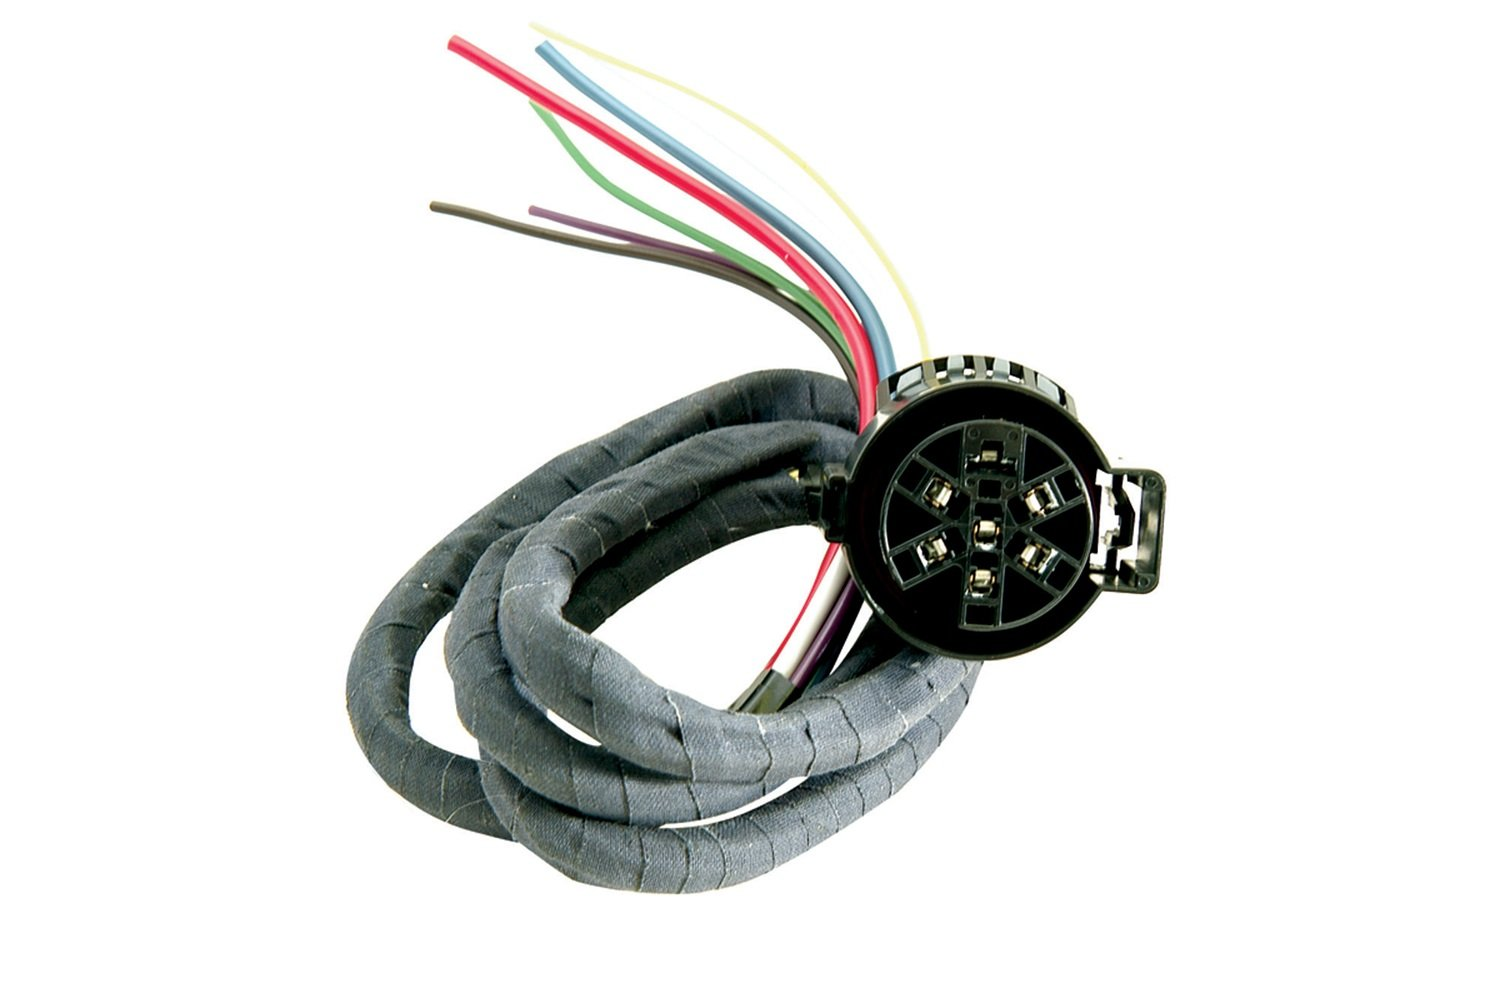 619JgDjQ1WL._SL1500_ amazon com hopkins 40985 universal multi tow harness connector universal wiring harness connector at gsmportal.co